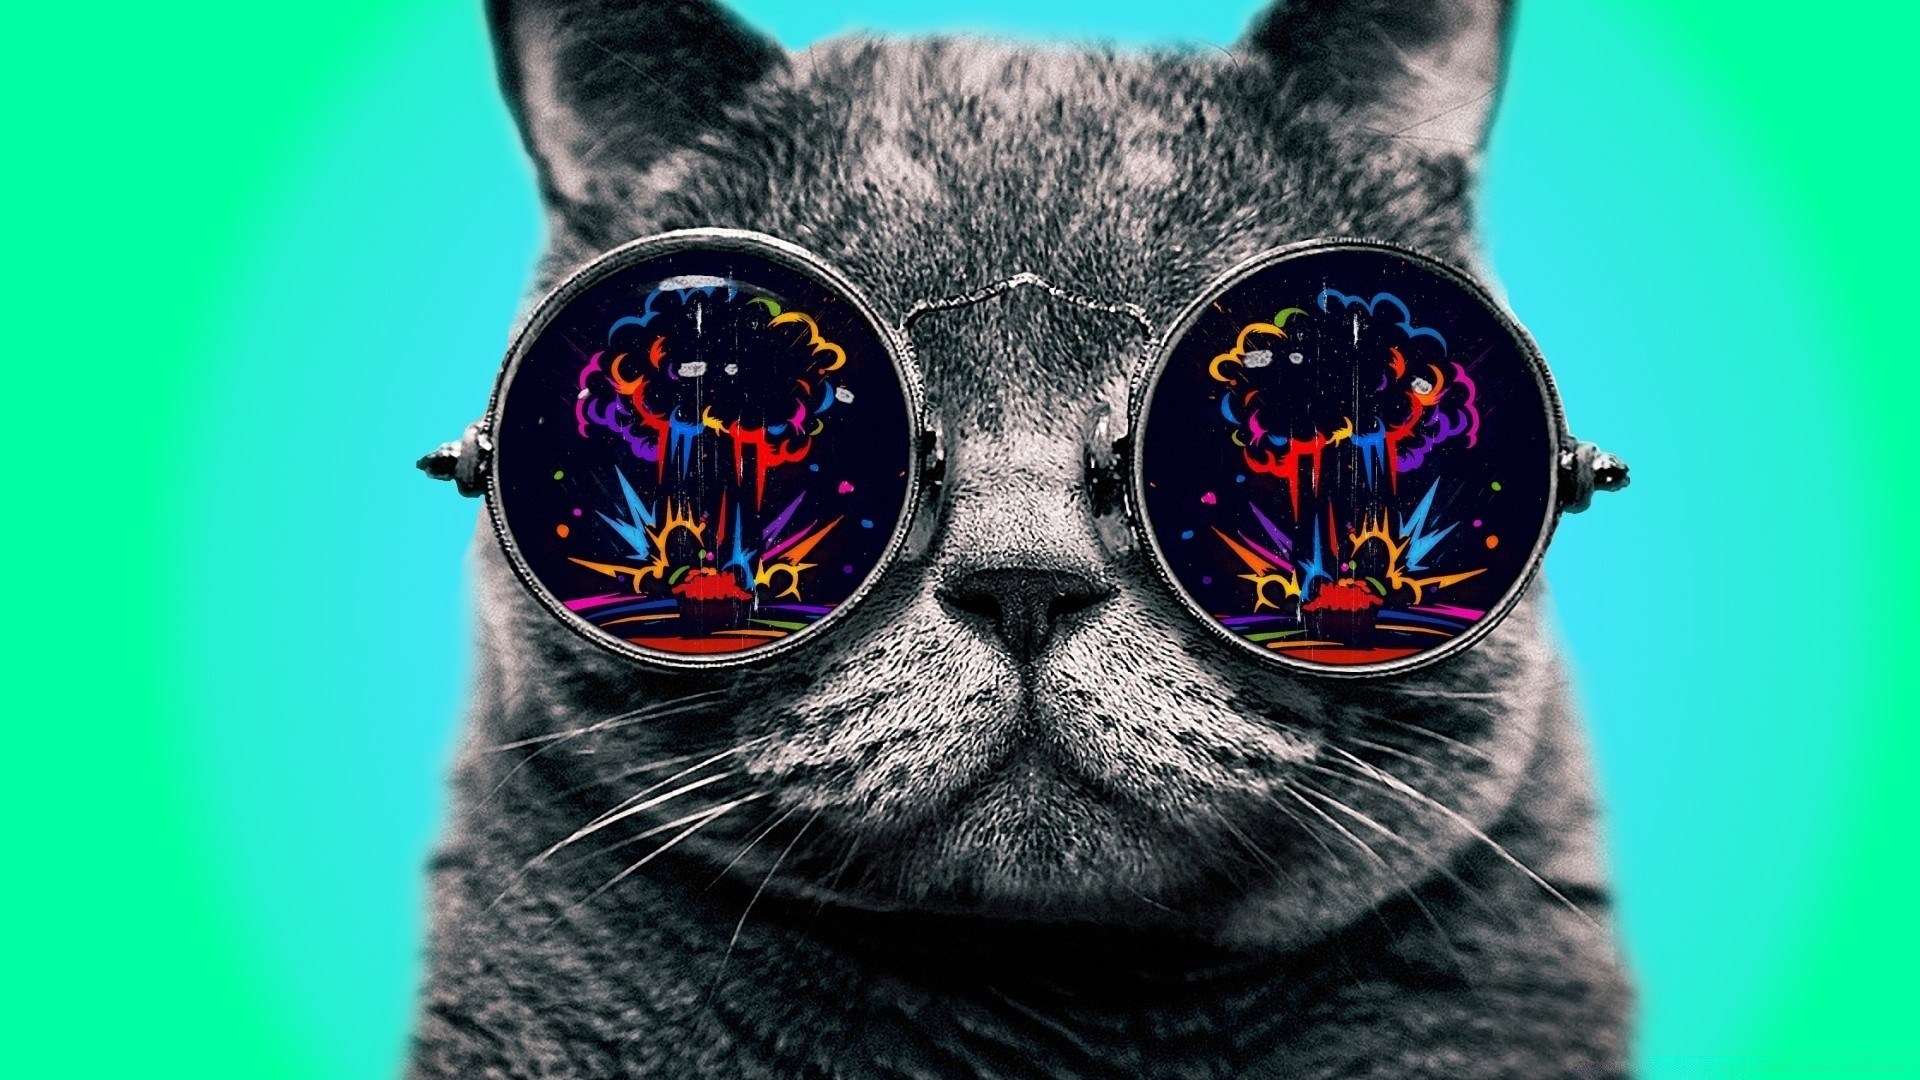 Cat With Glasses wallpaper photo hd